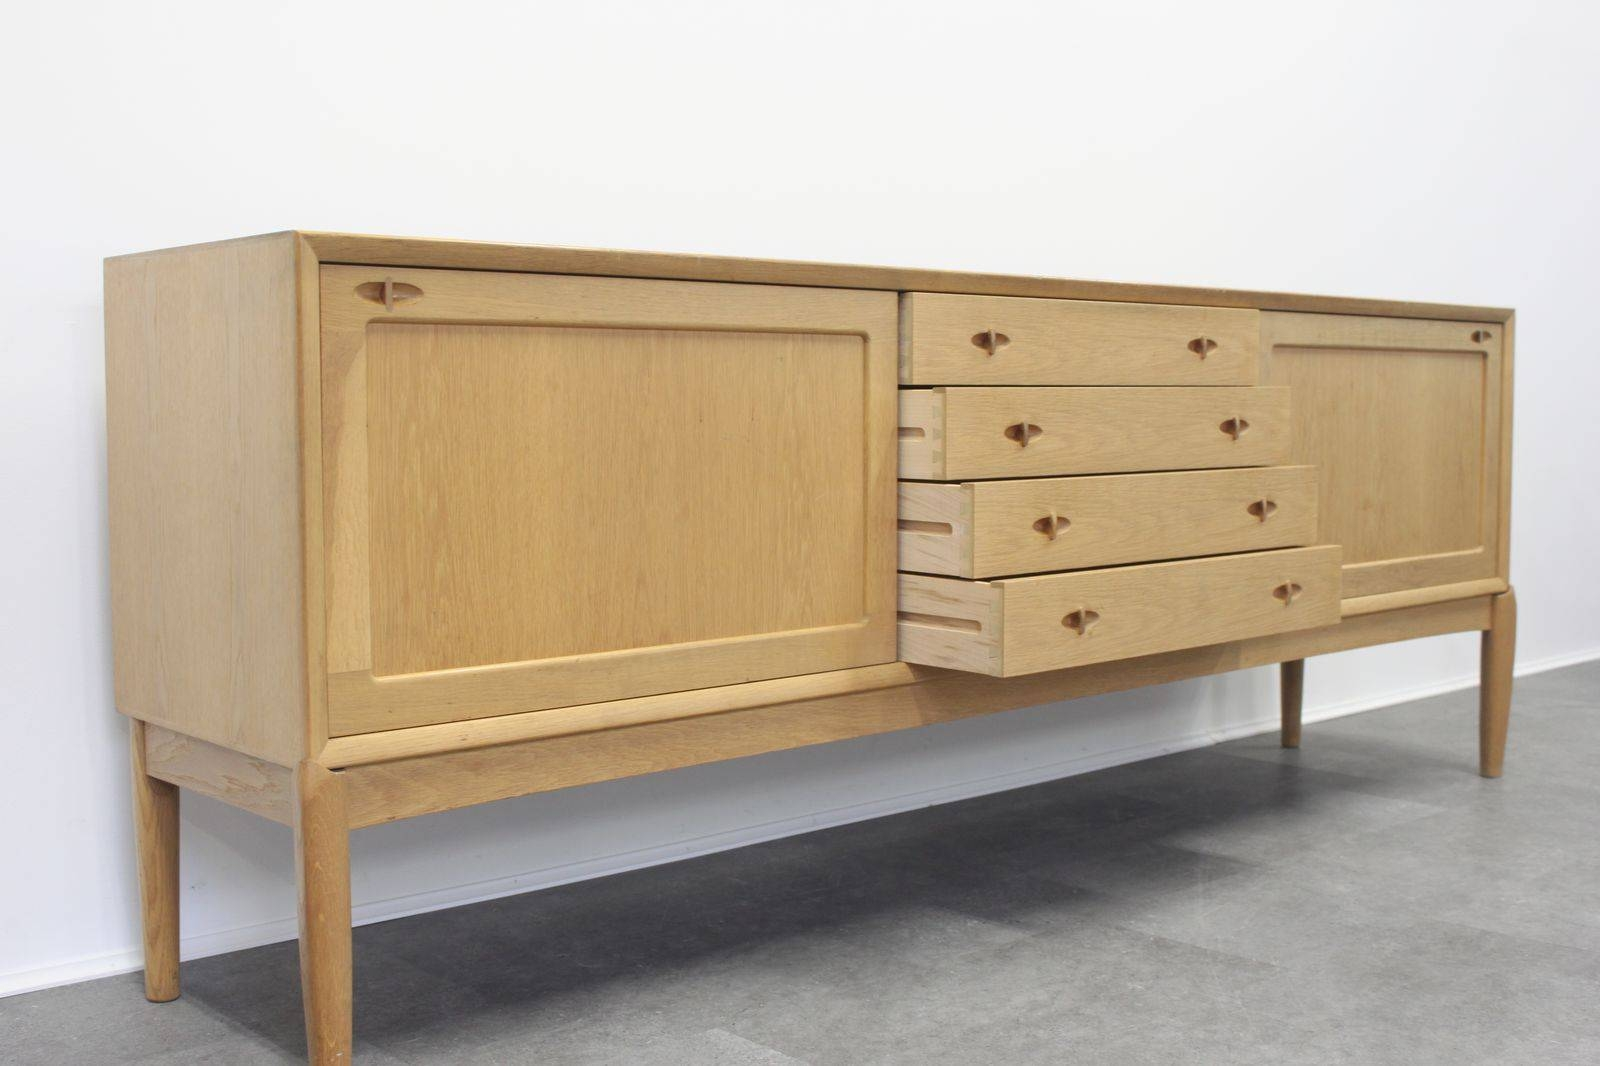 Inspiration about Vintage Oak Sideboardh.w. Klein For Bramin For Sale At Pamono Within Most Current Cheap Oak Sideboards (#12 of 15)